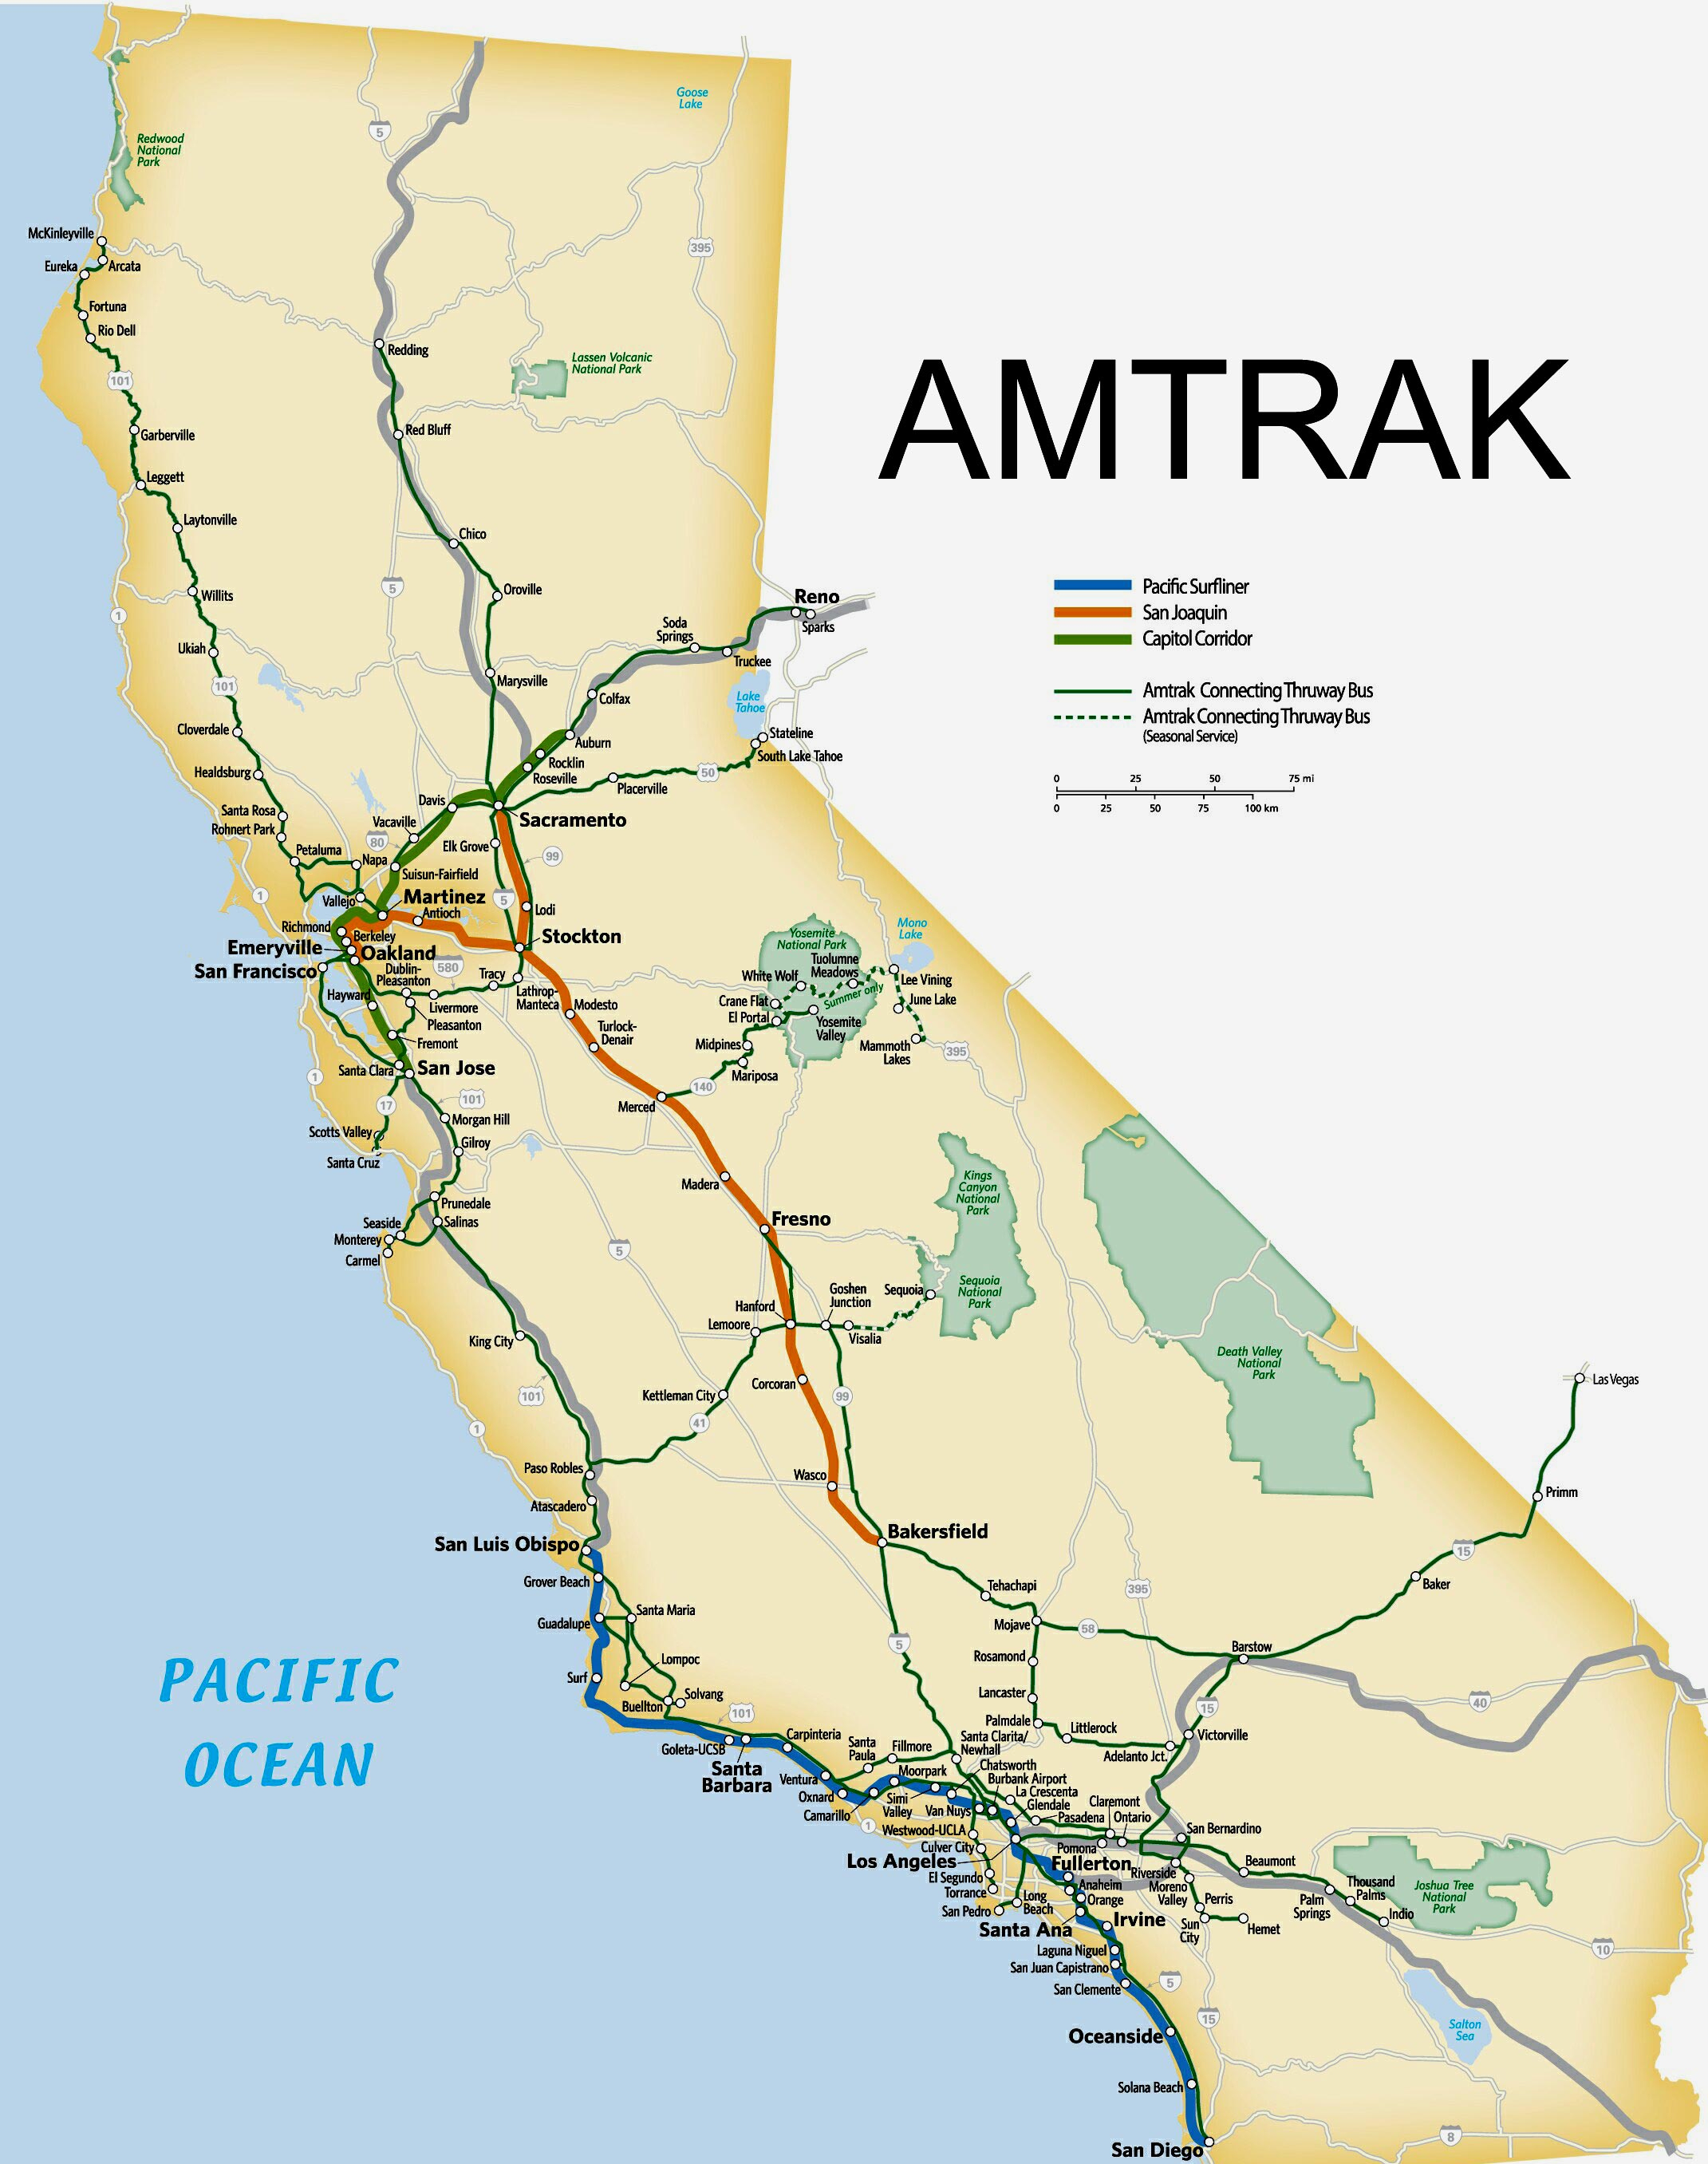 Amtrak Route Map Southern Map Of California Springs Amtrak Map - Amtrak Route Map California